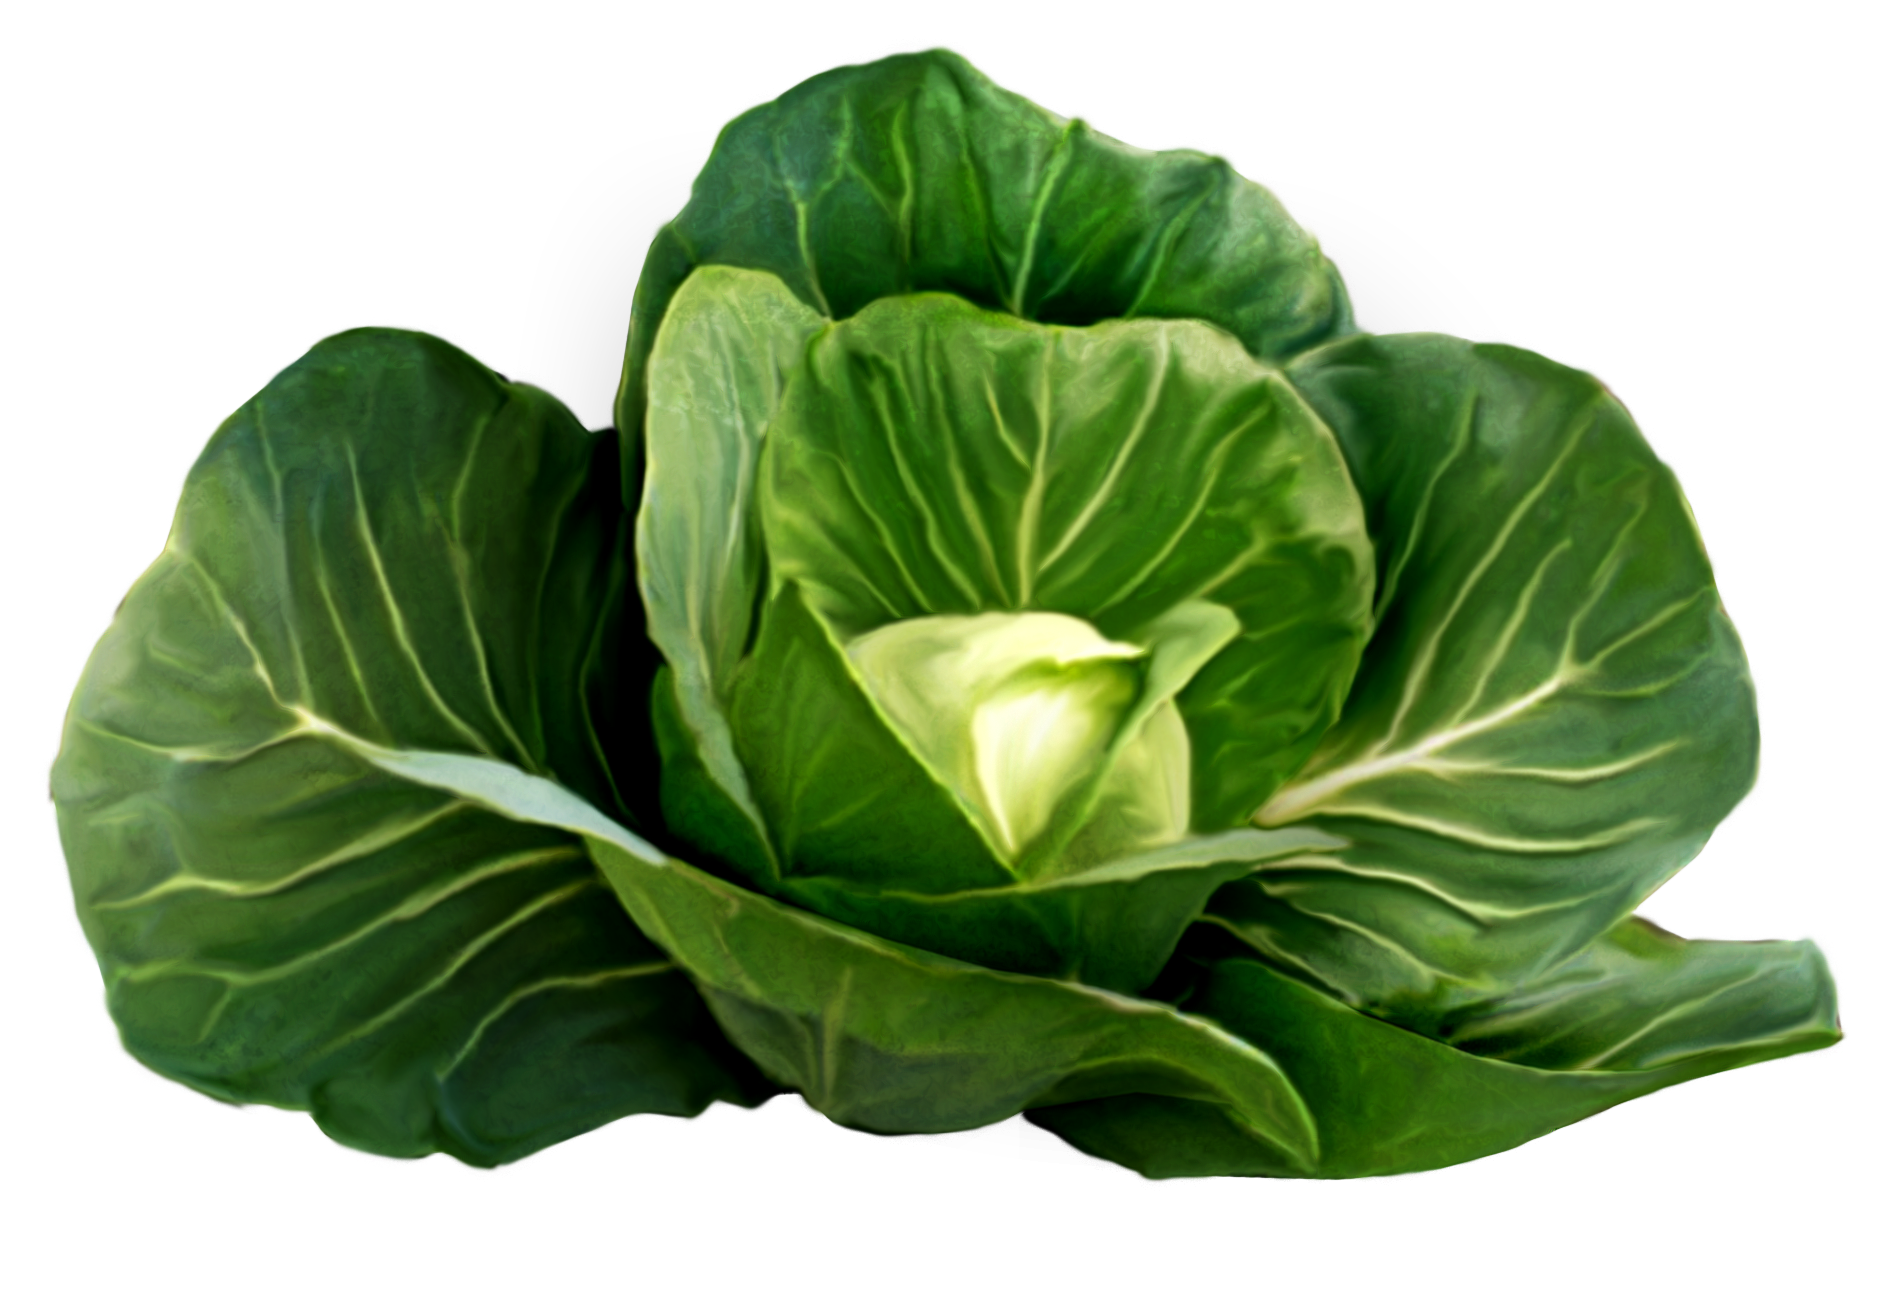 Vegetables fruits veggies . Cabbage clipart cabbage plant